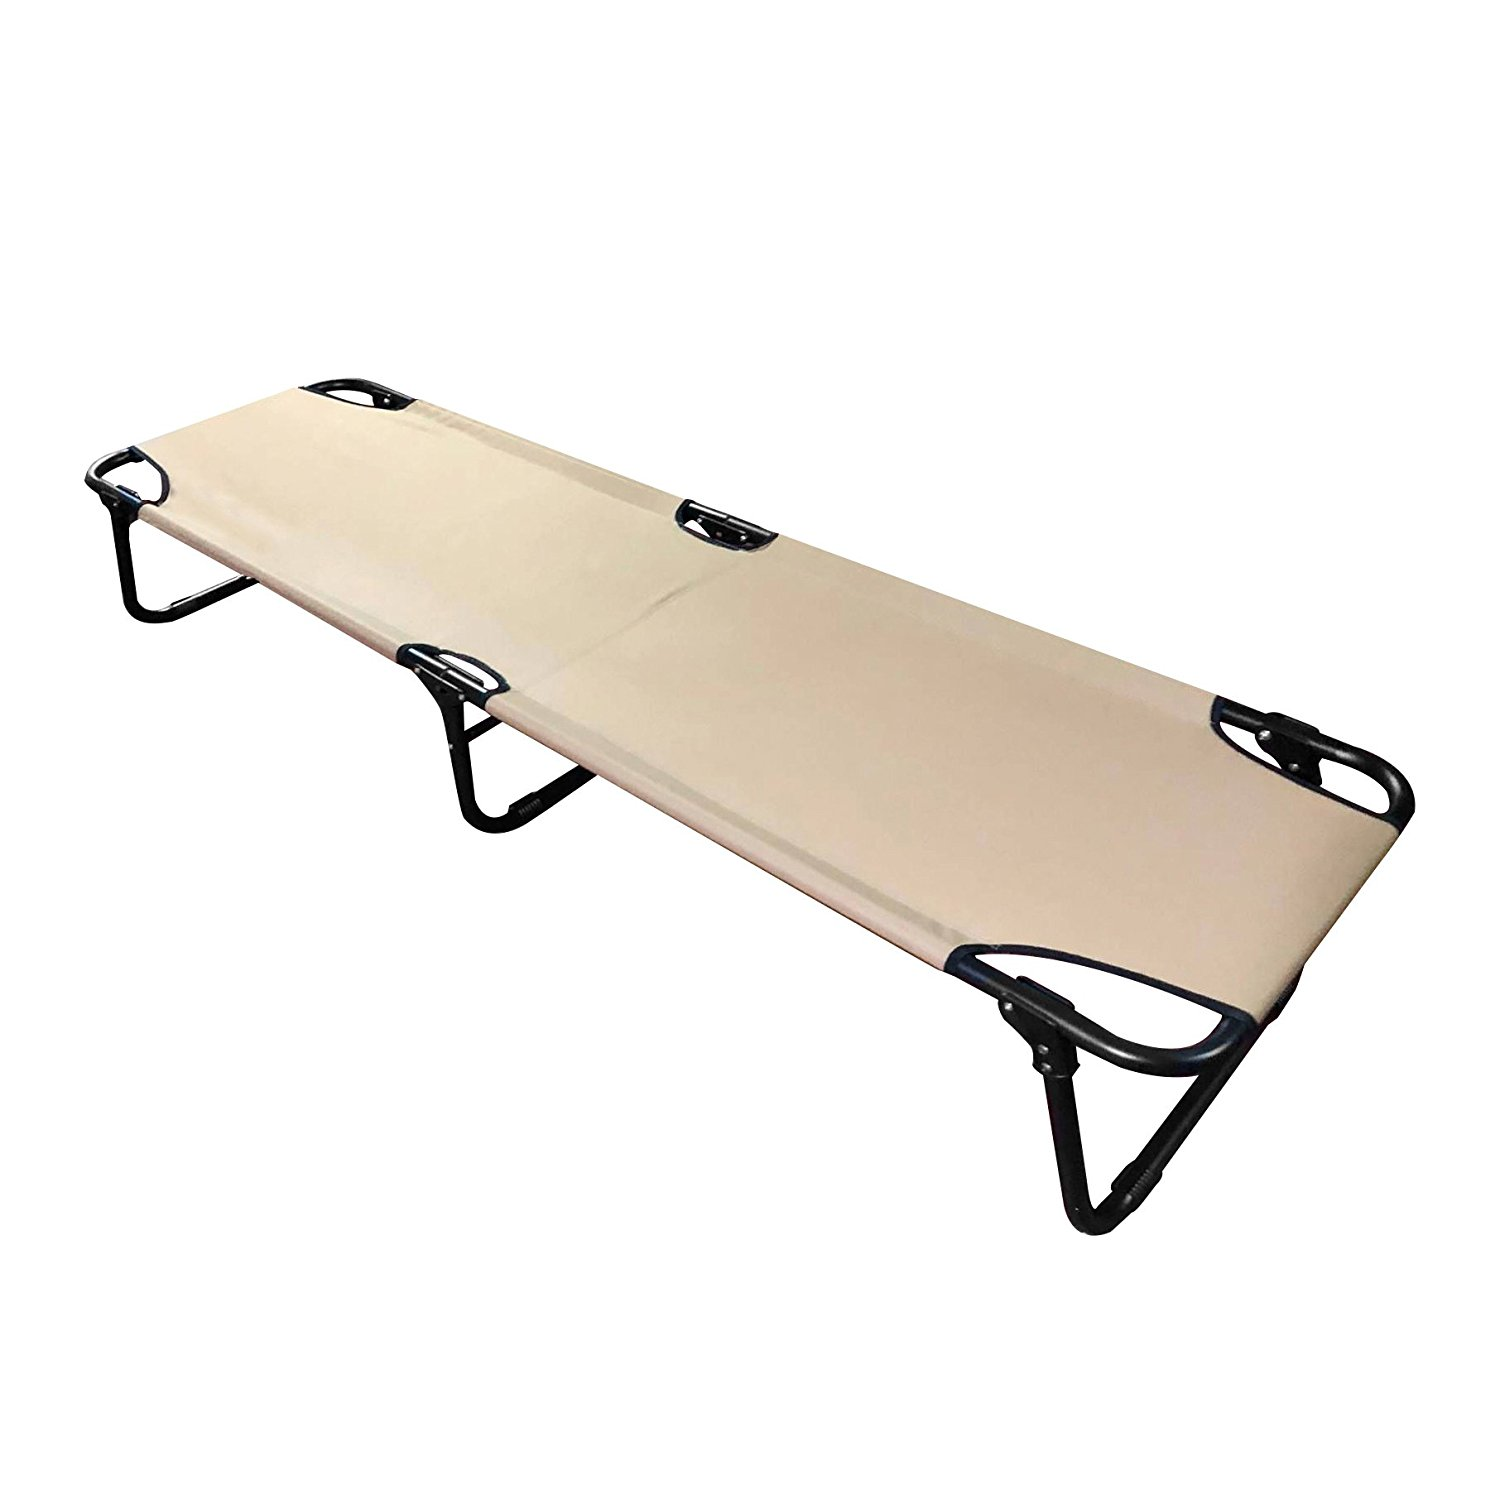 FCB-SD Fold Up Portable Camping Cot for Camping Hiking Hunting Easy Set Up Sand